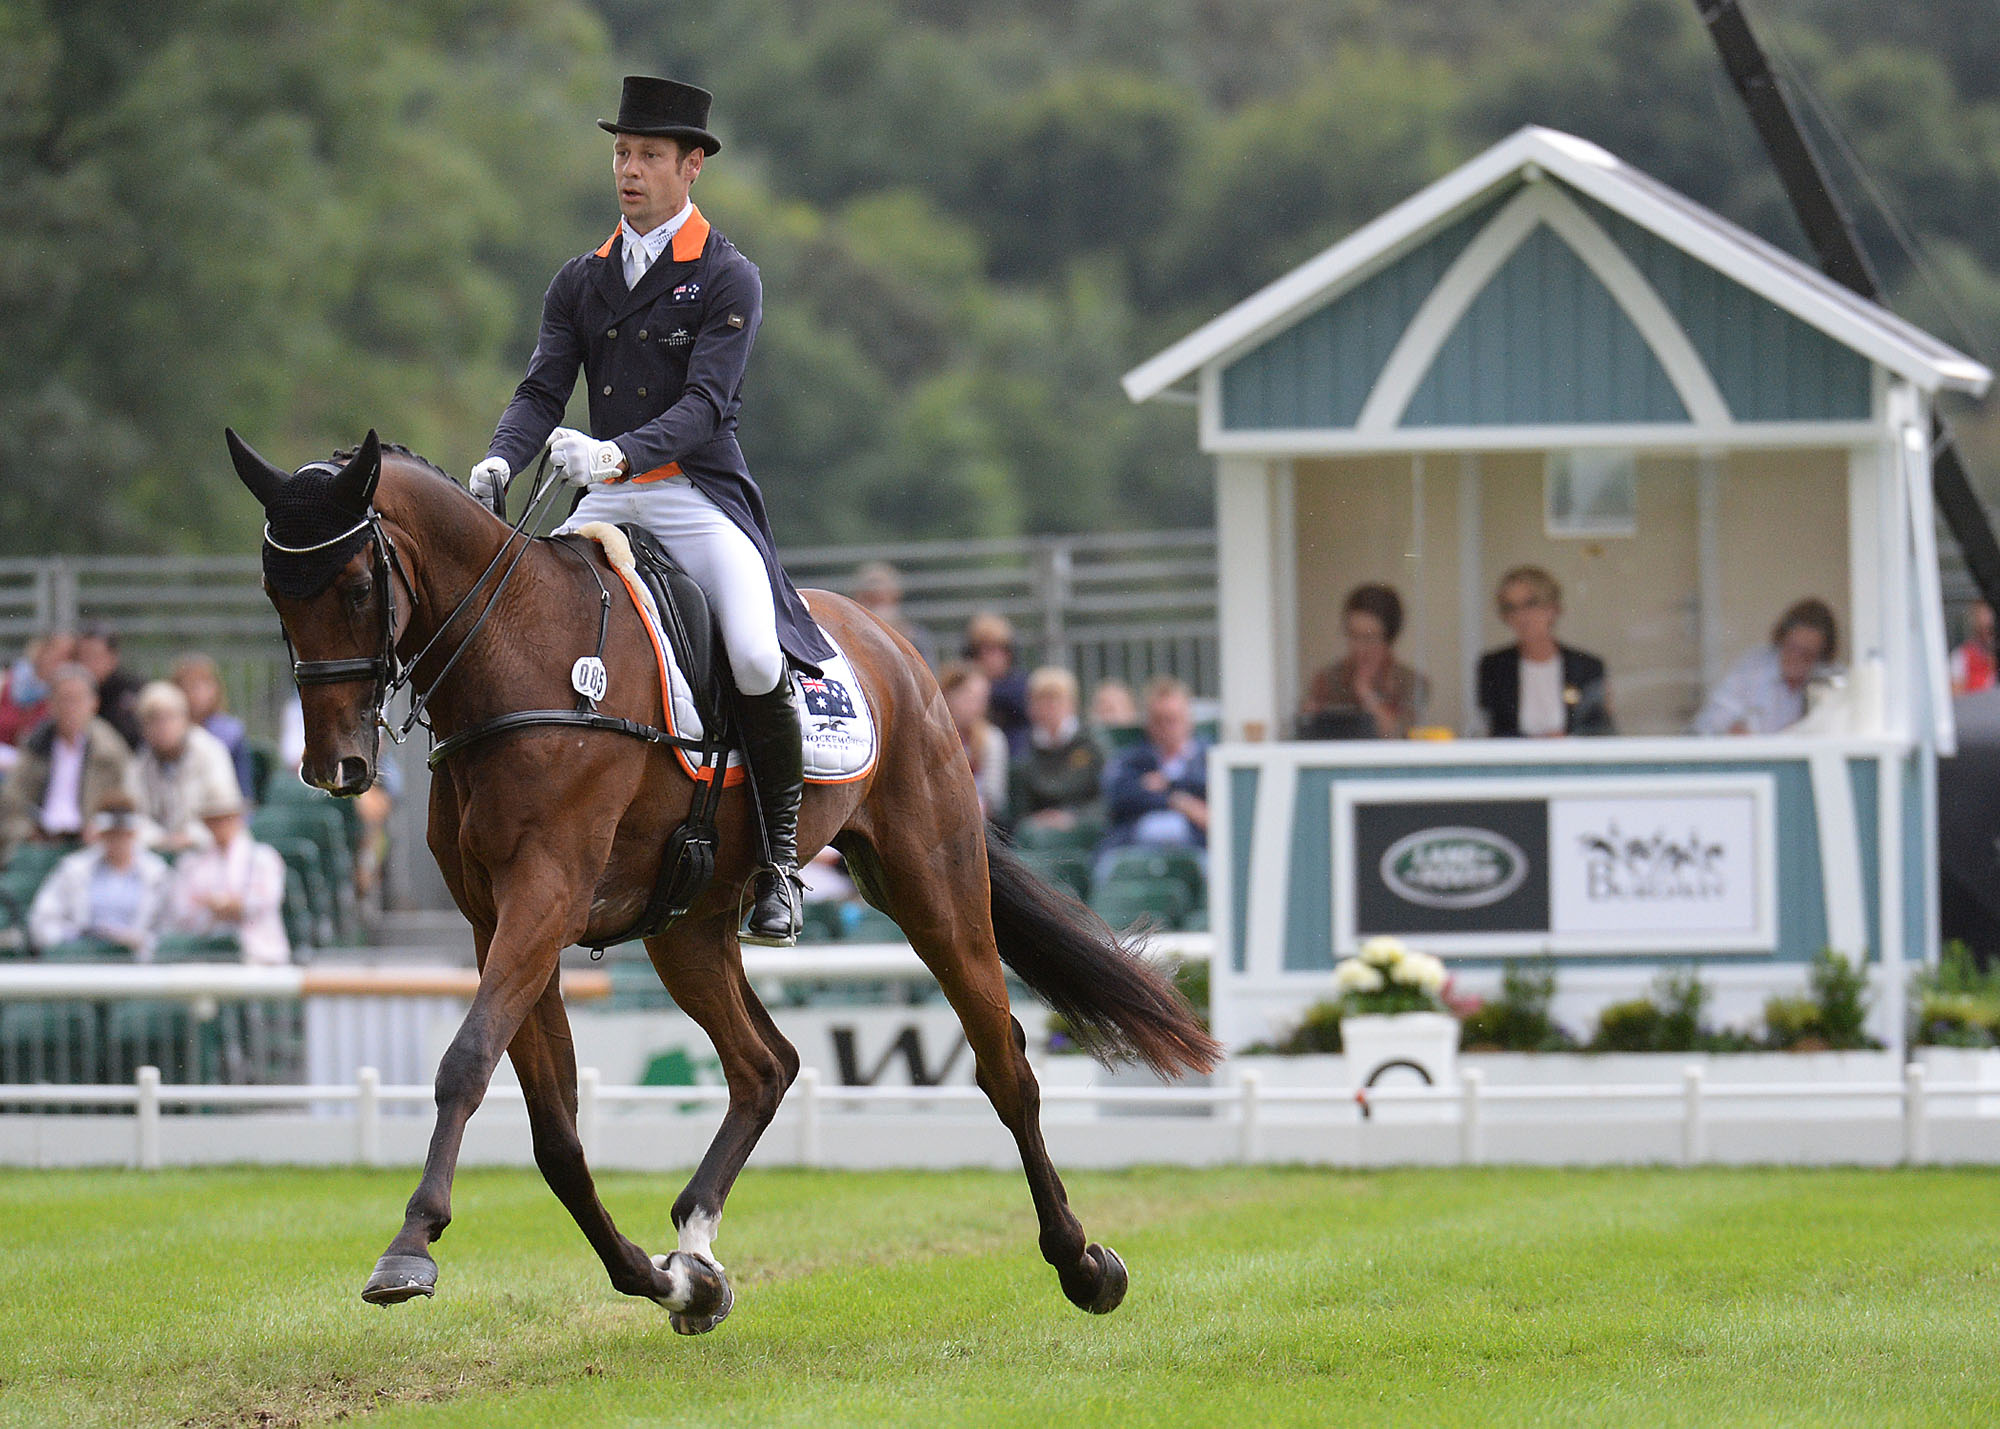 Christopher Burton and Nobilis 18 © Land Rover Burghley Horse Trials Peter Nixon